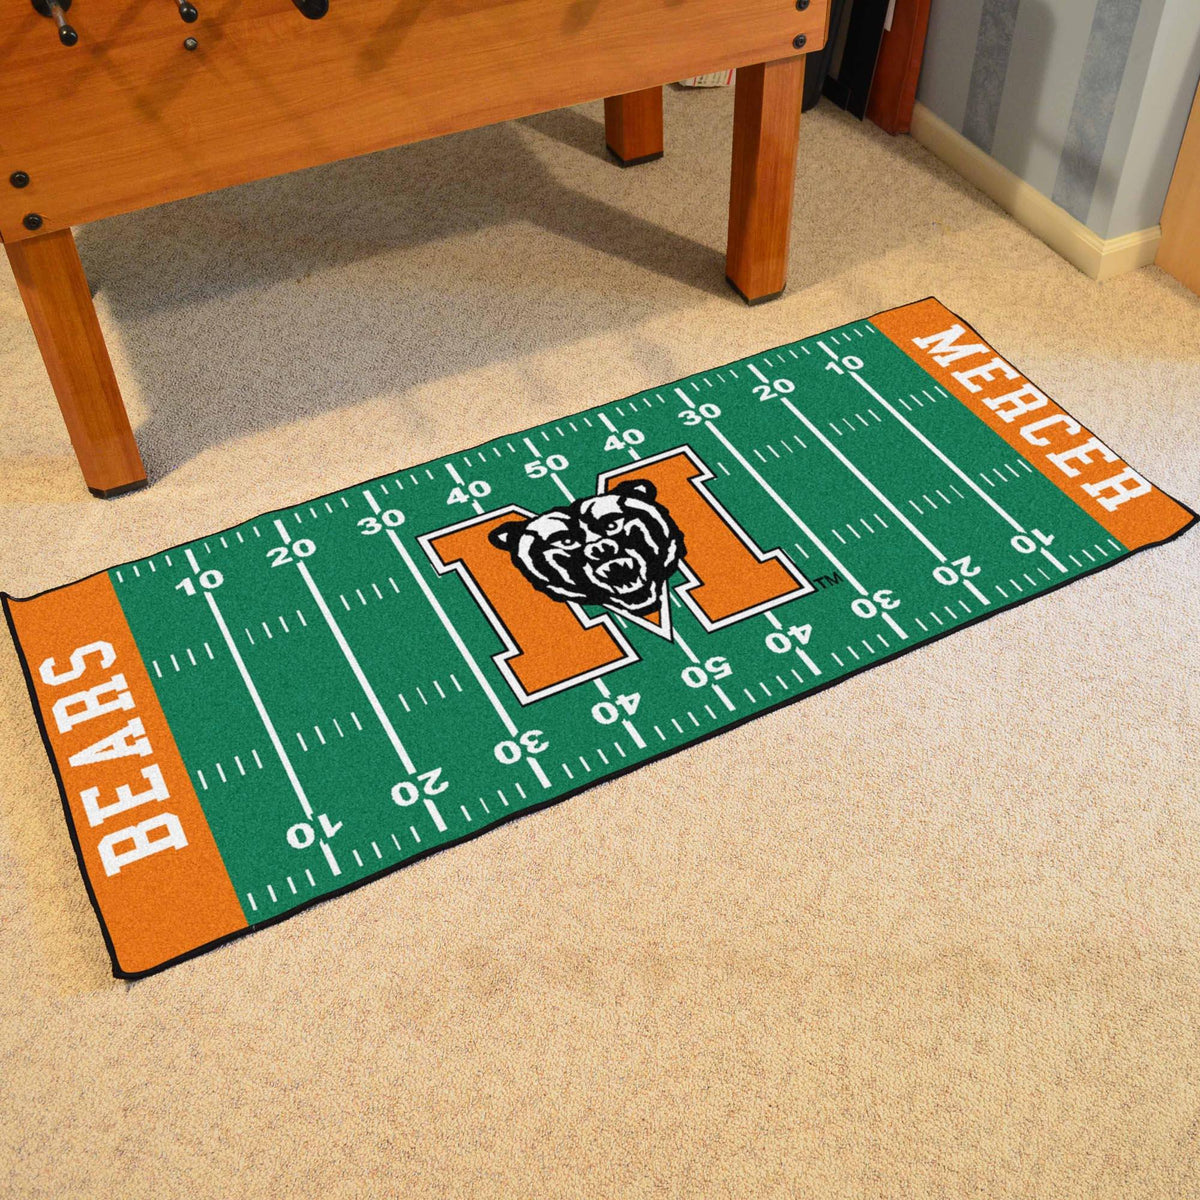 Collegiate - Football Field Runner Collegiate Mats, Rectangular Mats, Football Field Runner, Collegiate, Home Fan Mats Mercer